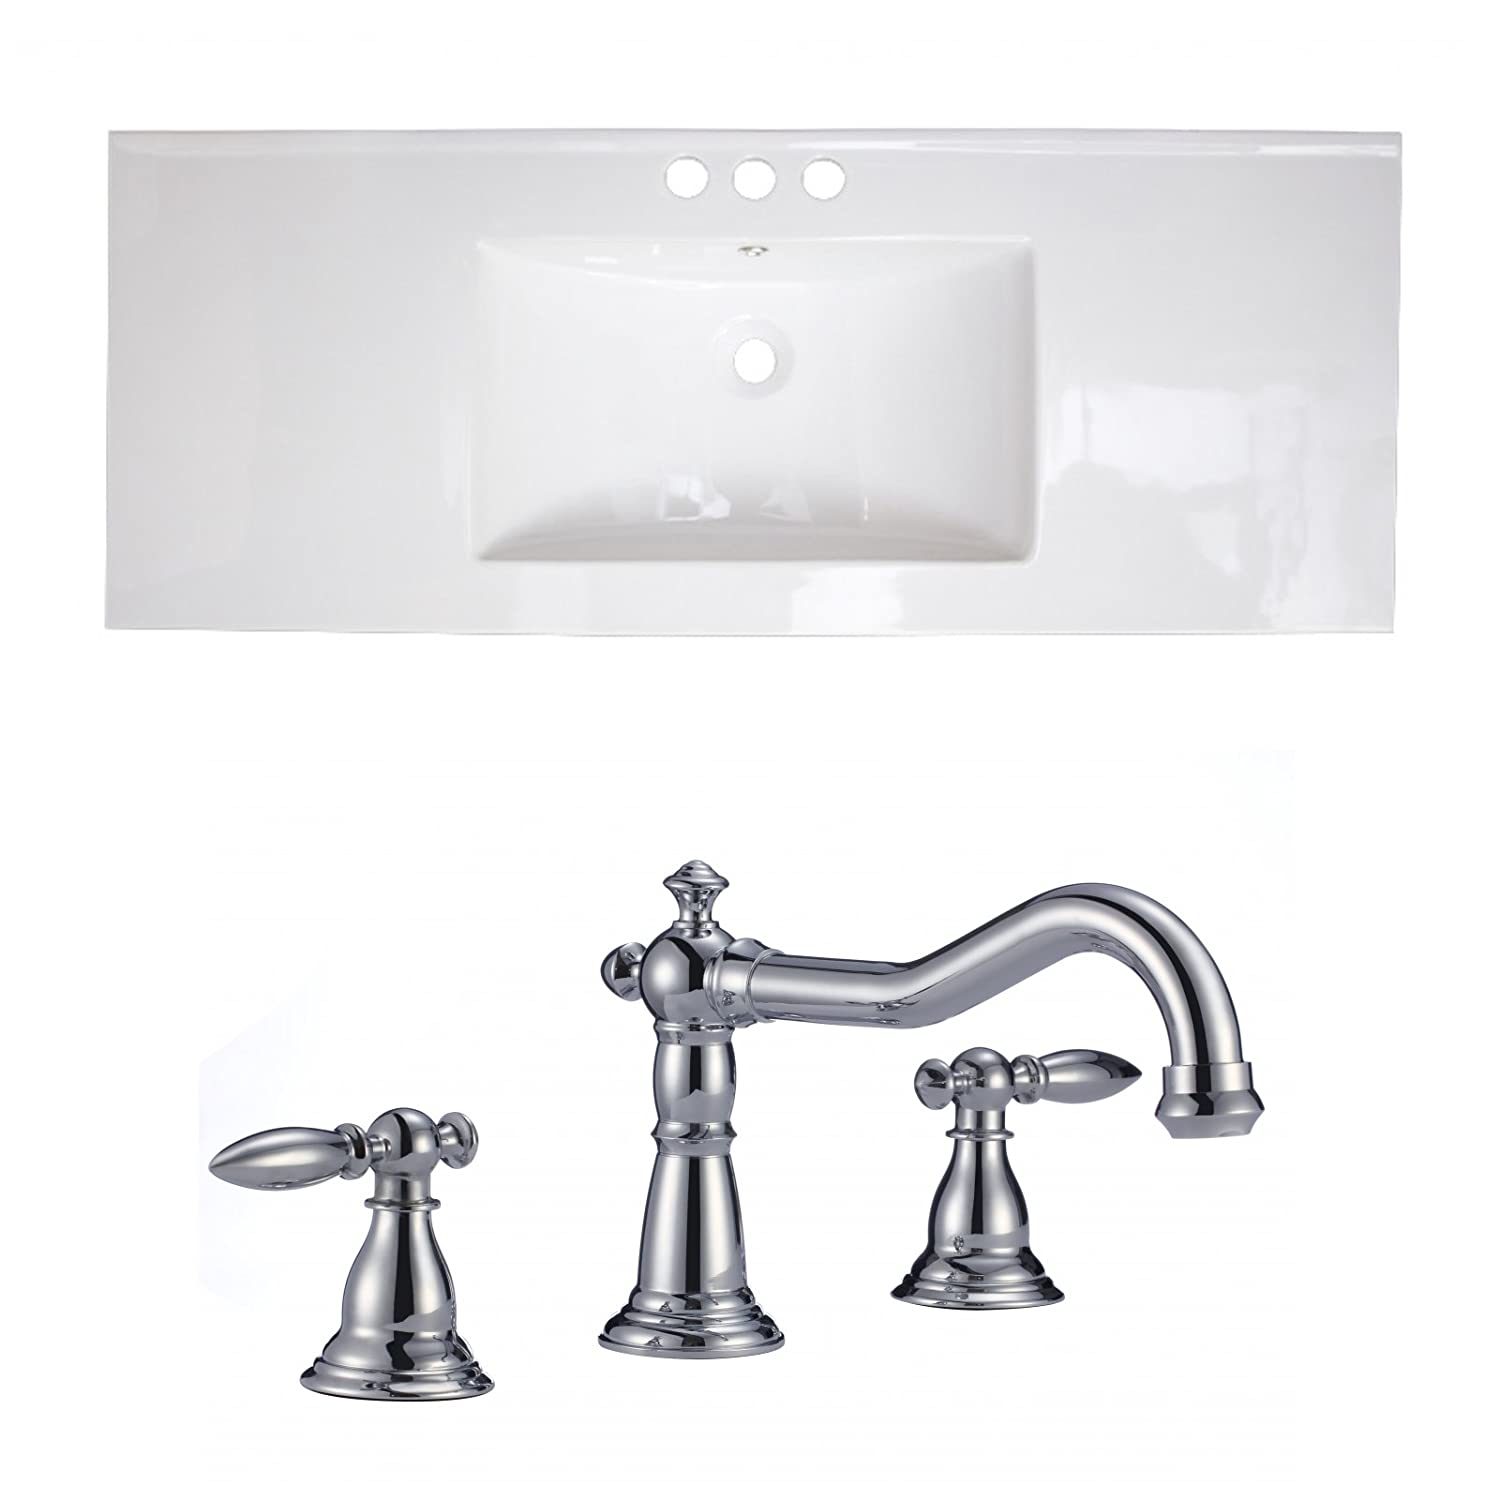 "Jade Bath JB-15782 48"" W x 18"" D Ceramic Top Set with 8"" o.c. CUPC Faucet, White low-cost"